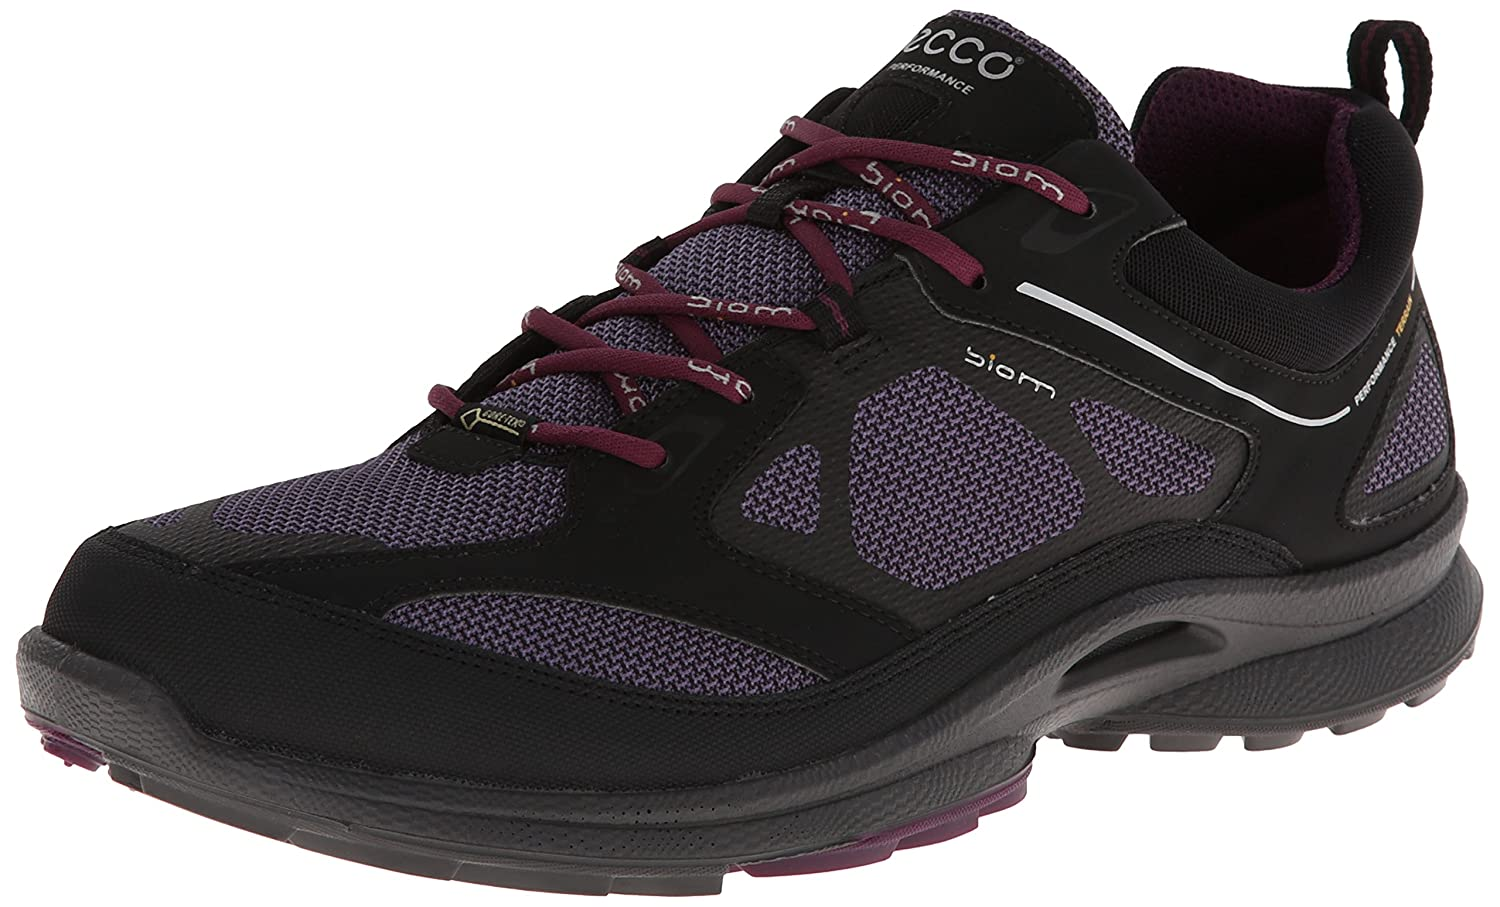 97ba70640db Amazon.com | ECCO Women's Biom Ultra Quest GTX Cross-Training Shoe |  Fashion Sneakers